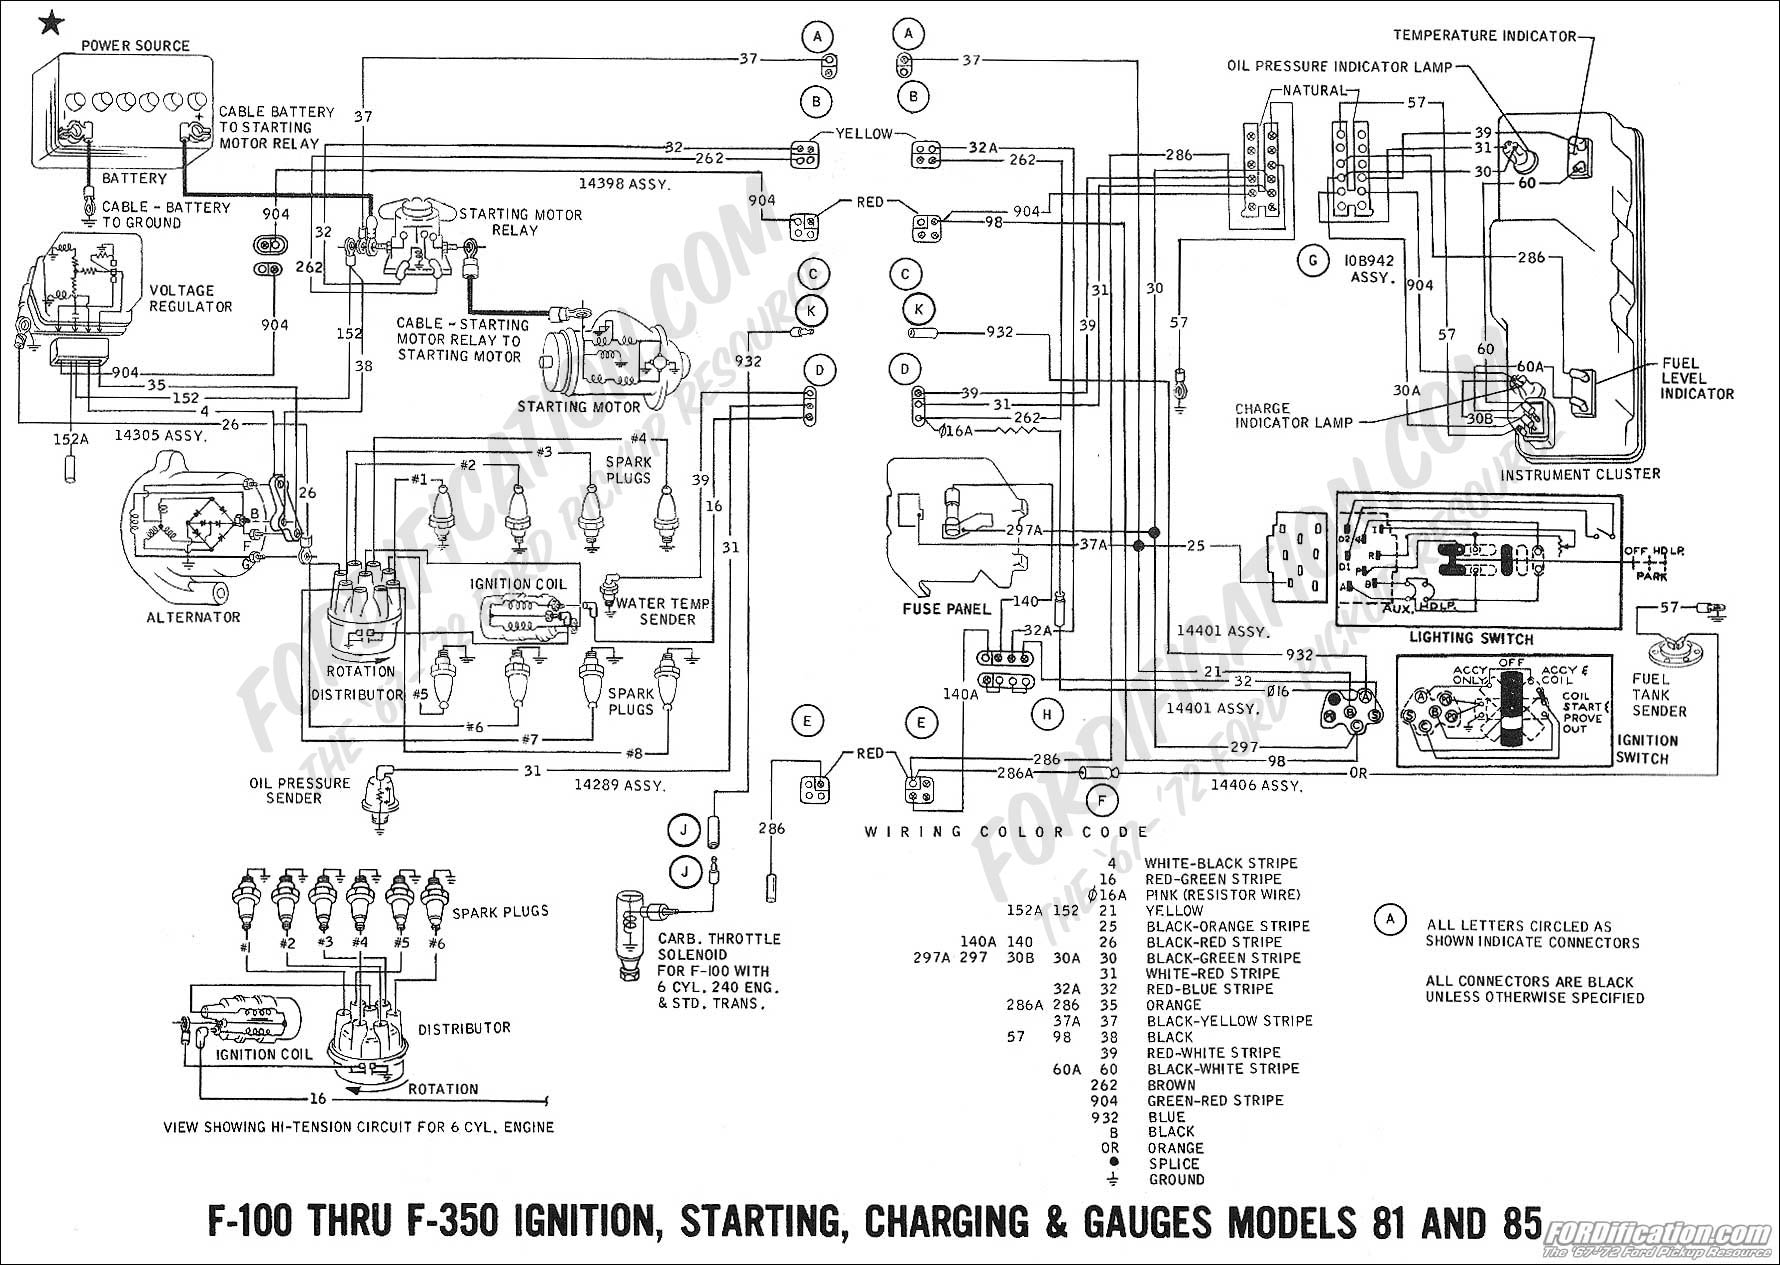 hight resolution of 1966 f 100 wiring diagram wiring diagram third level 1967 ford f100 turn signal wiring diagram 1967 ford pickup wiring diagram